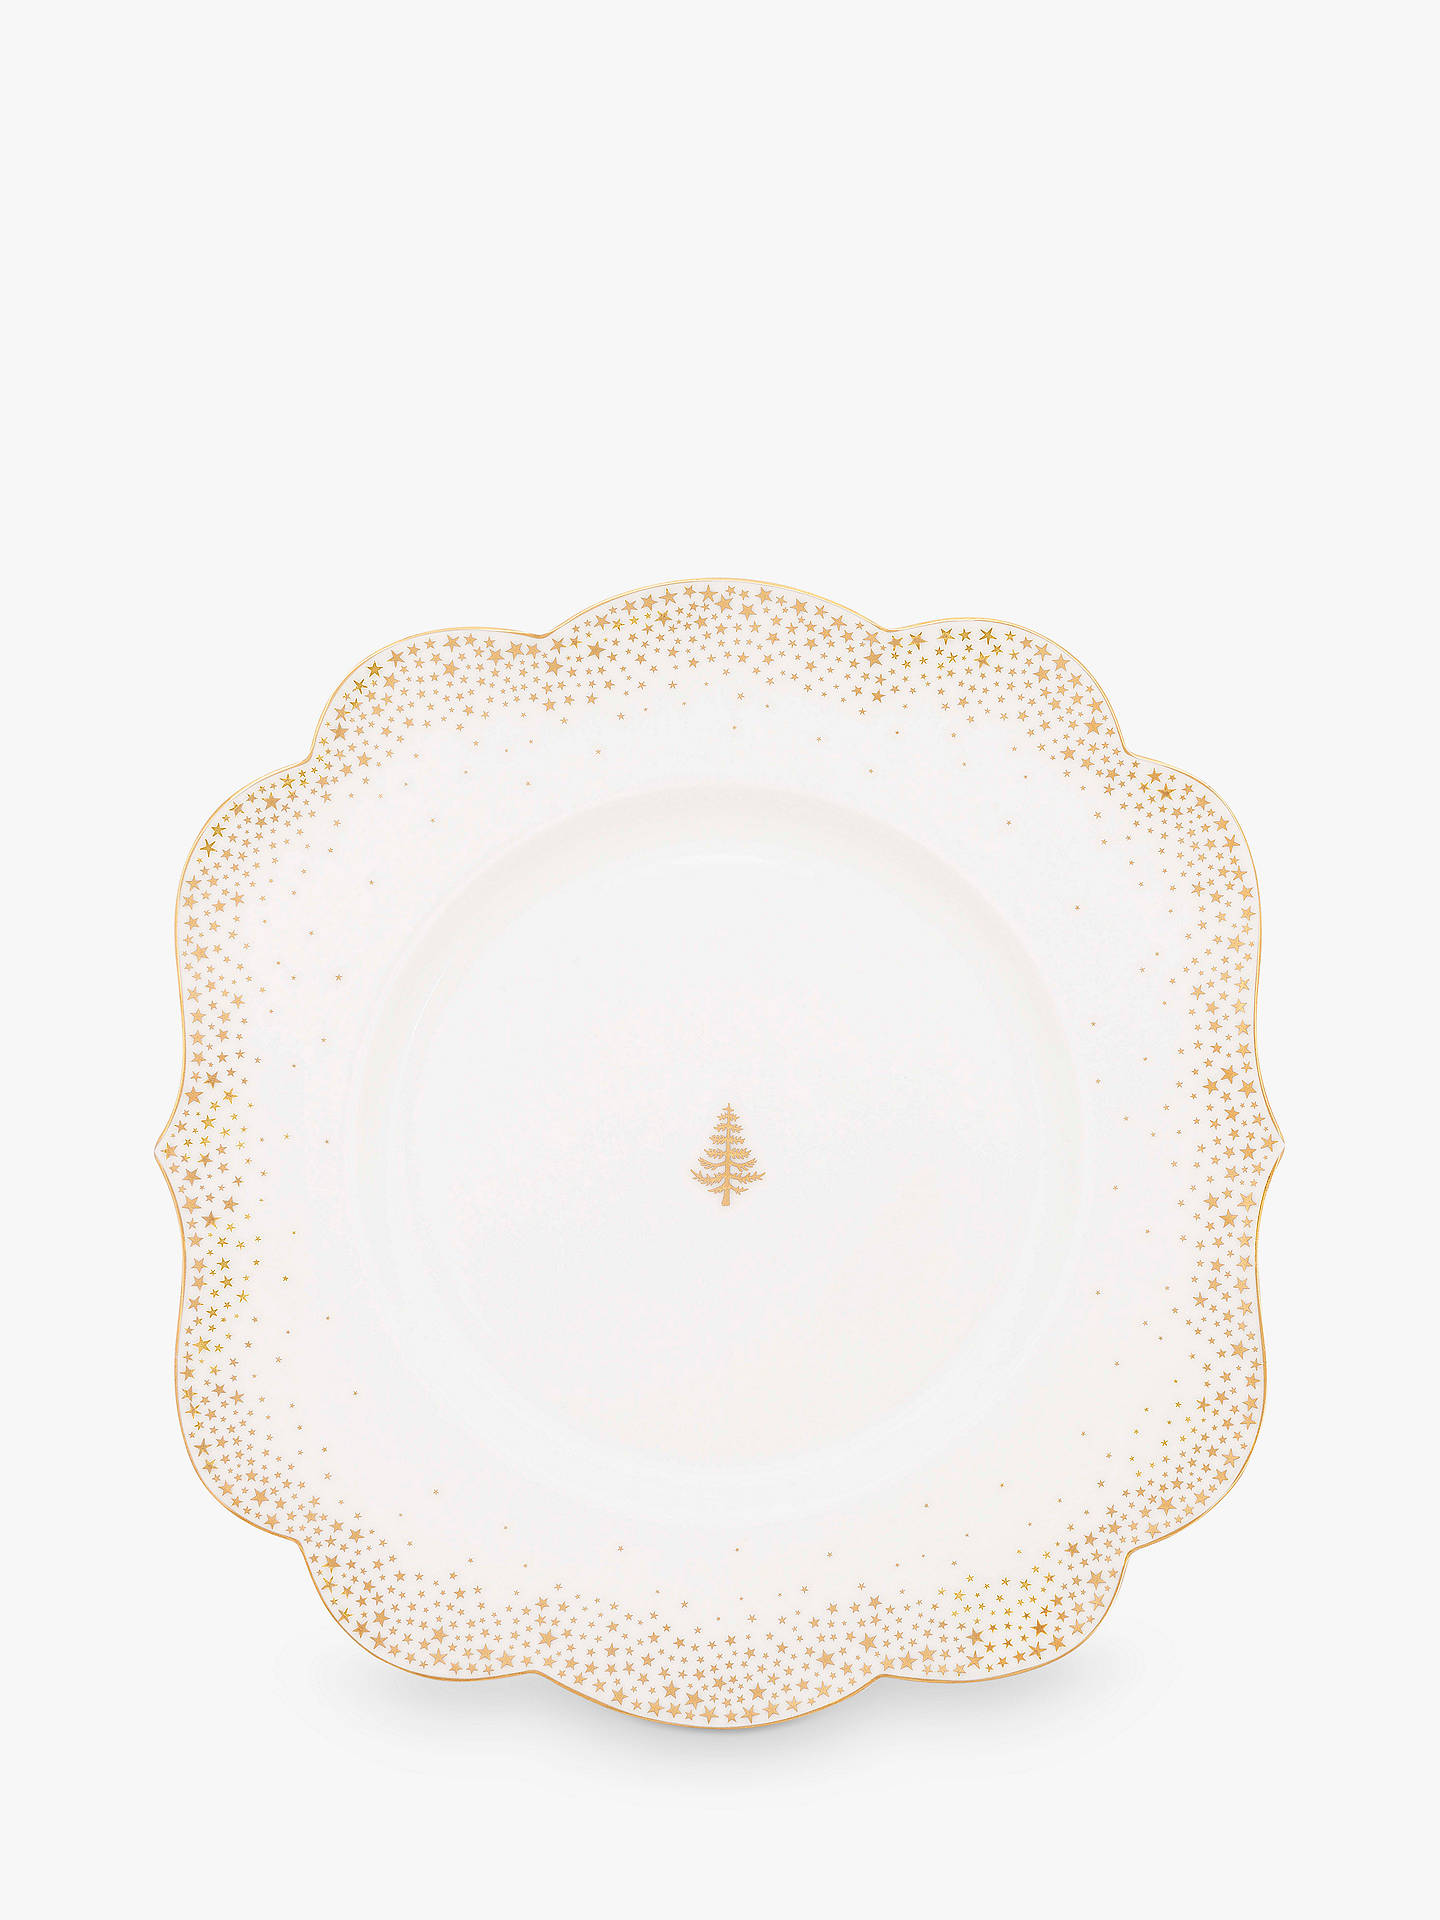 BuyPiP Studio Royal Christmas Plate, White/Gold, 23.5cm Online at johnlewis.com